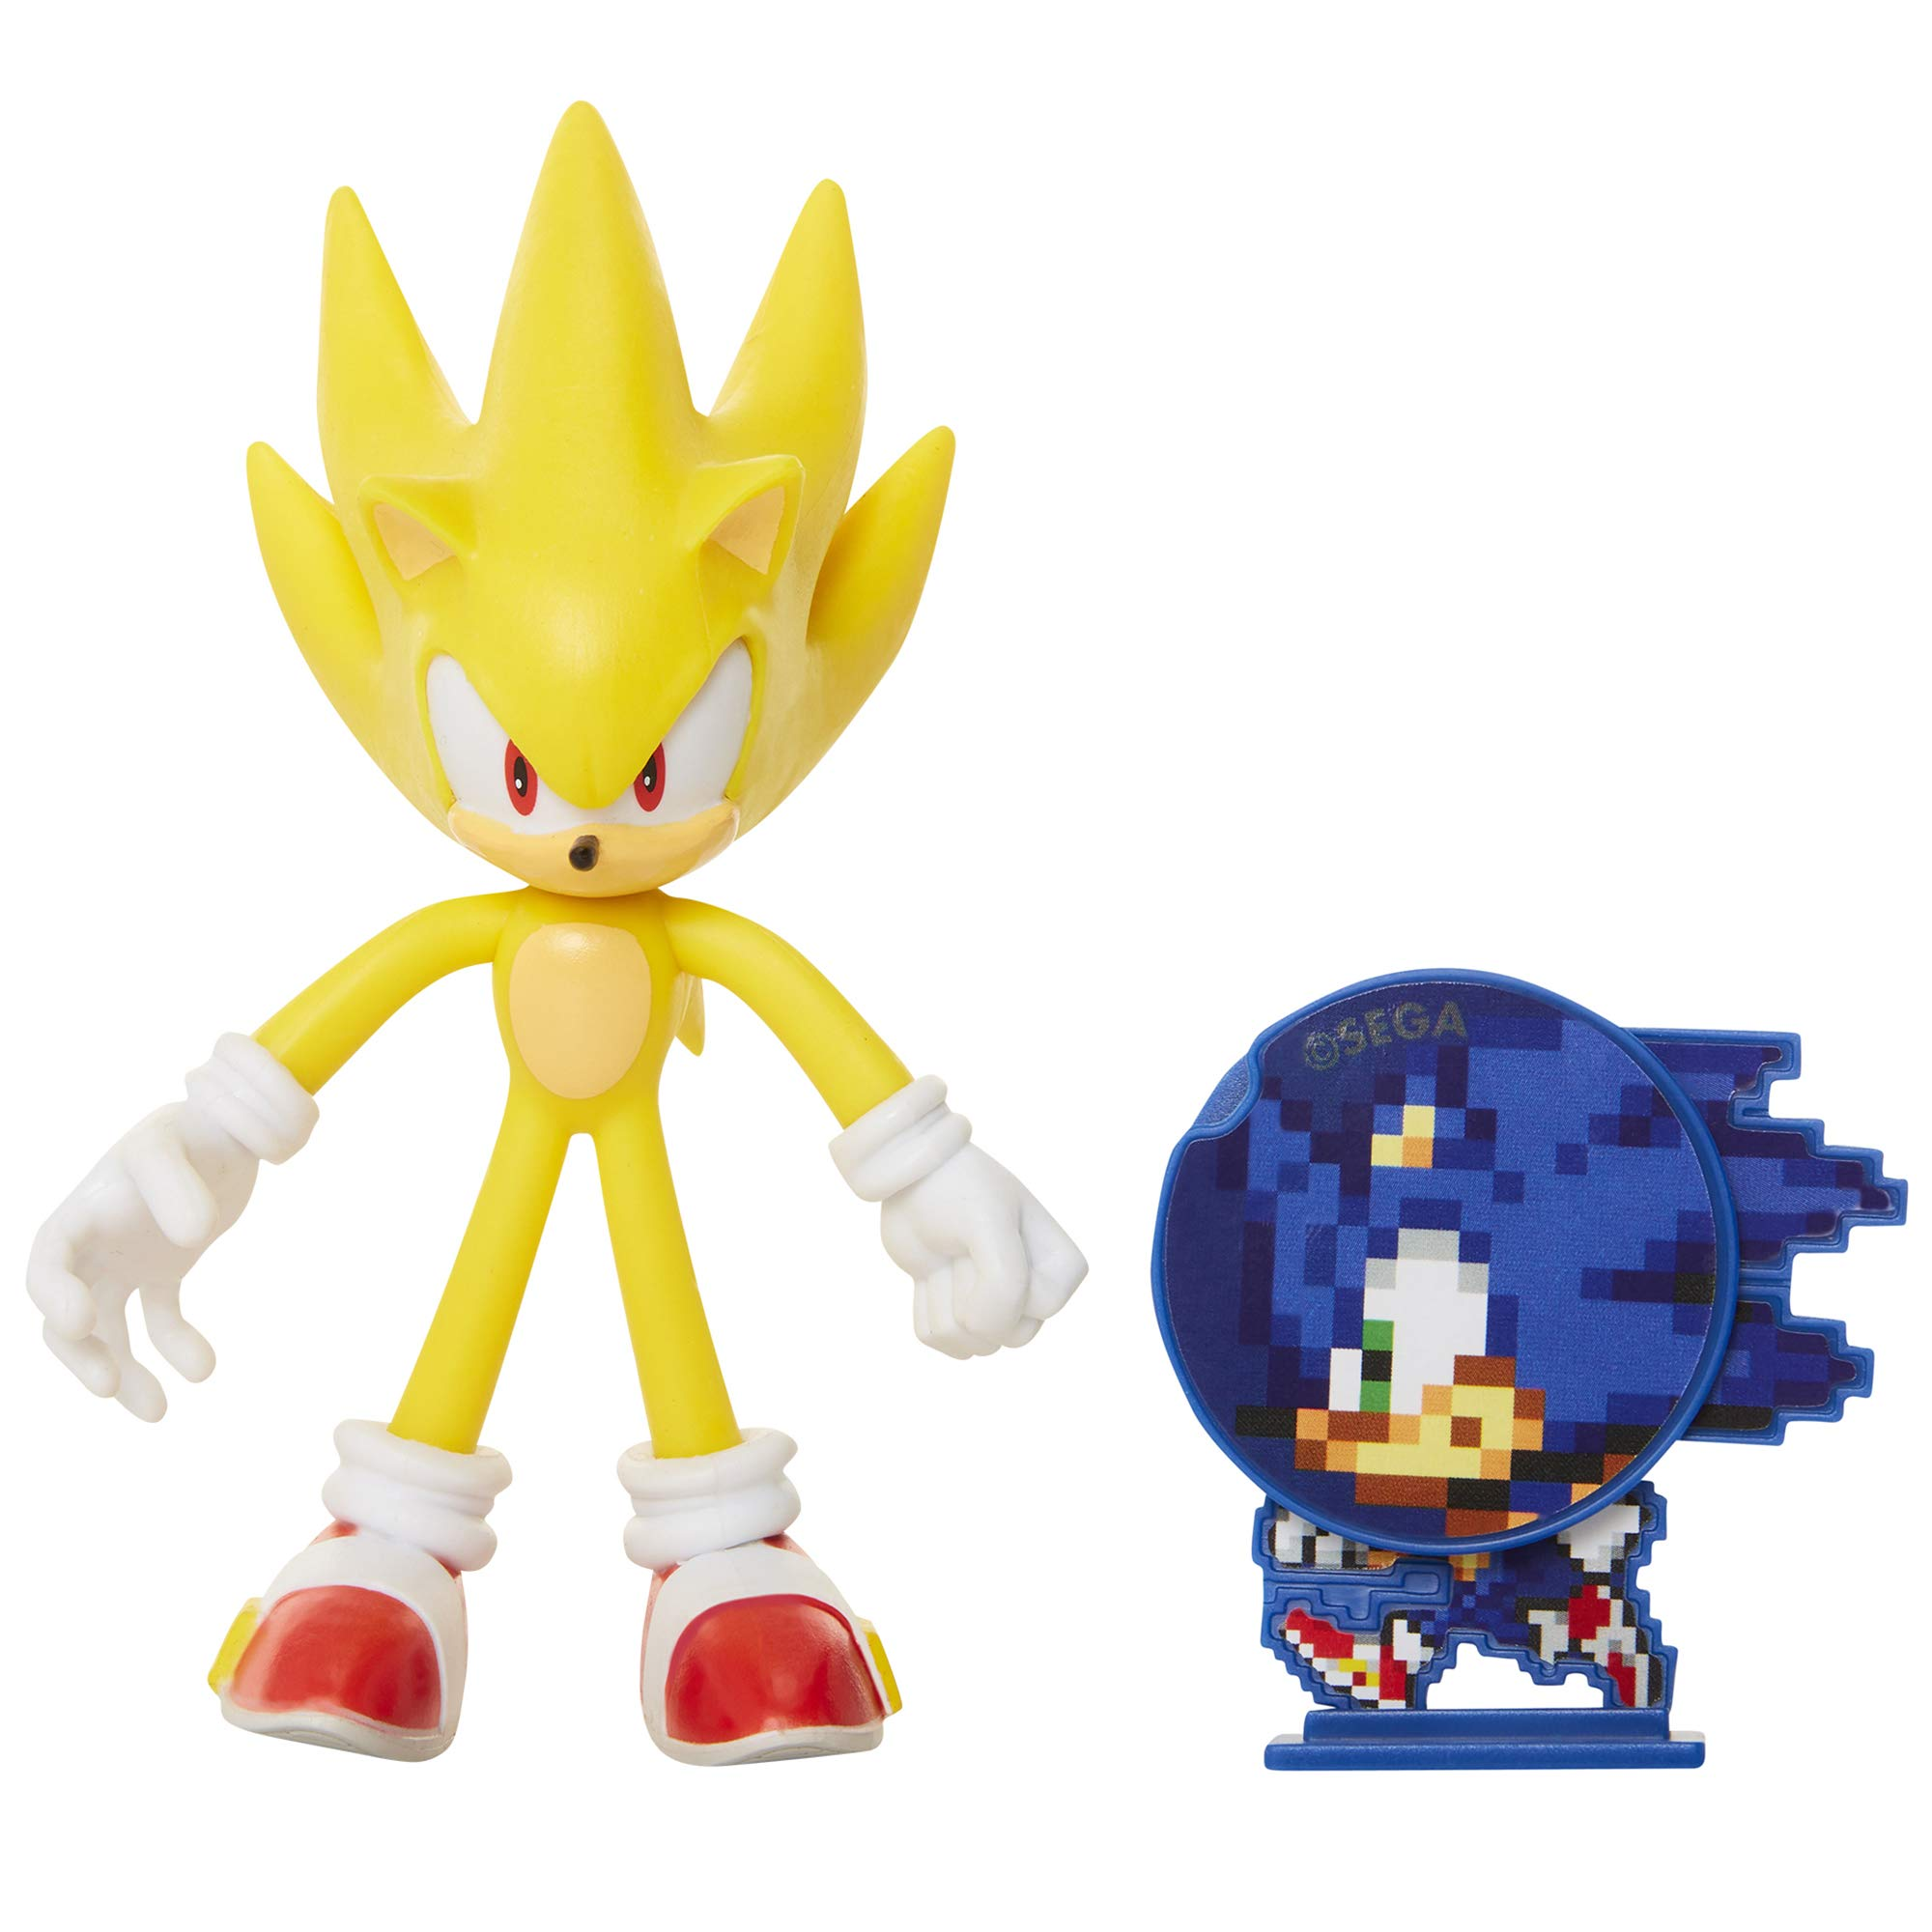 "Sonic The Hedgehog Collectible Super Sonic 4"" Bendable Flexible Action Figure with Bendable Limbs & Spinable Friend Disk Accessory Perfect For Kids & Collectors Alike for Ages 3+ (400574)"